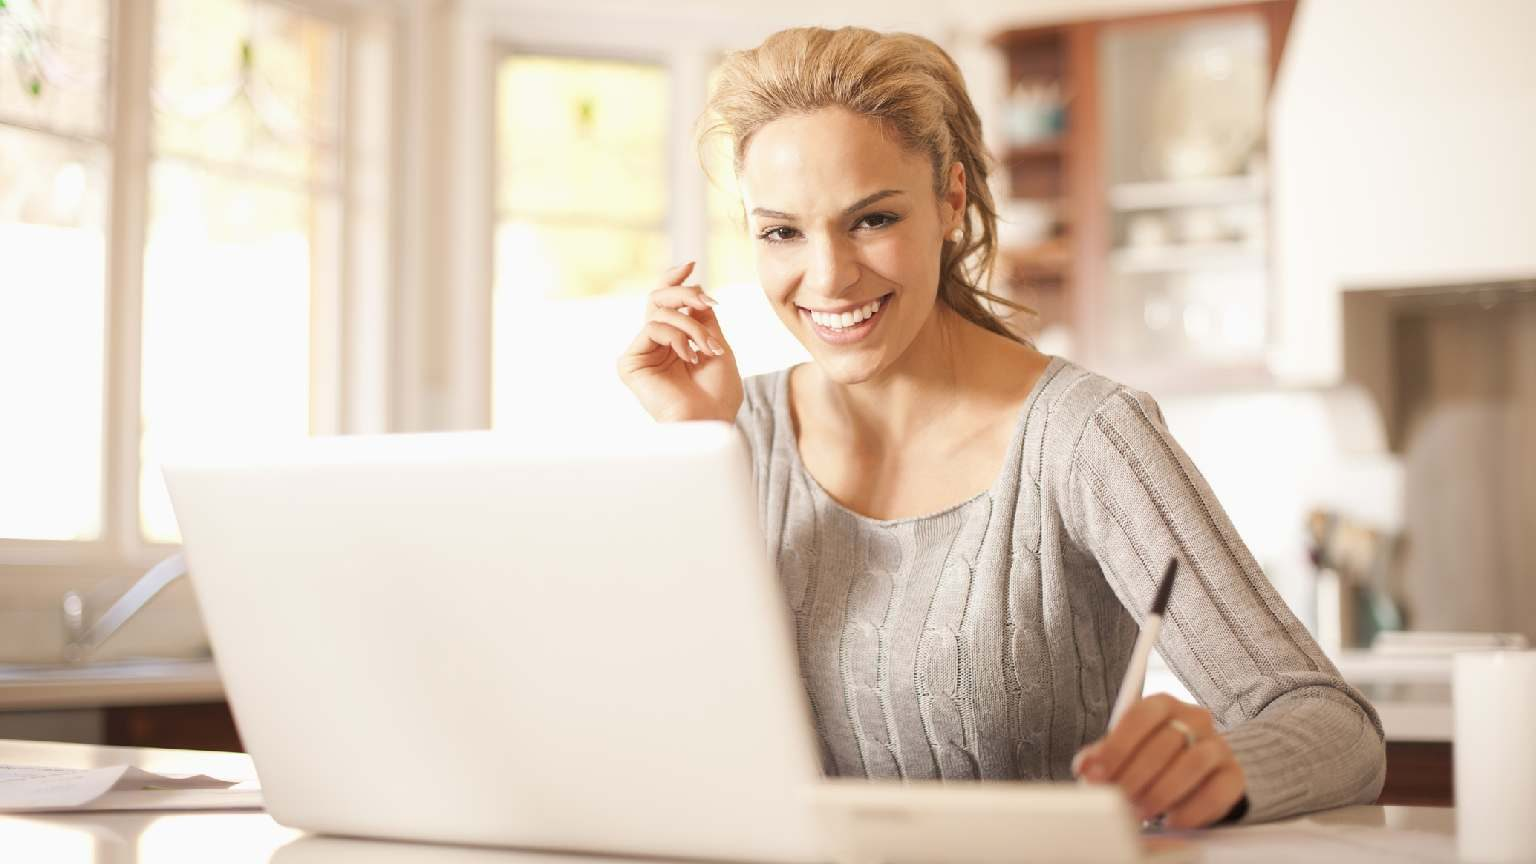 Smiling woman at home using laptop